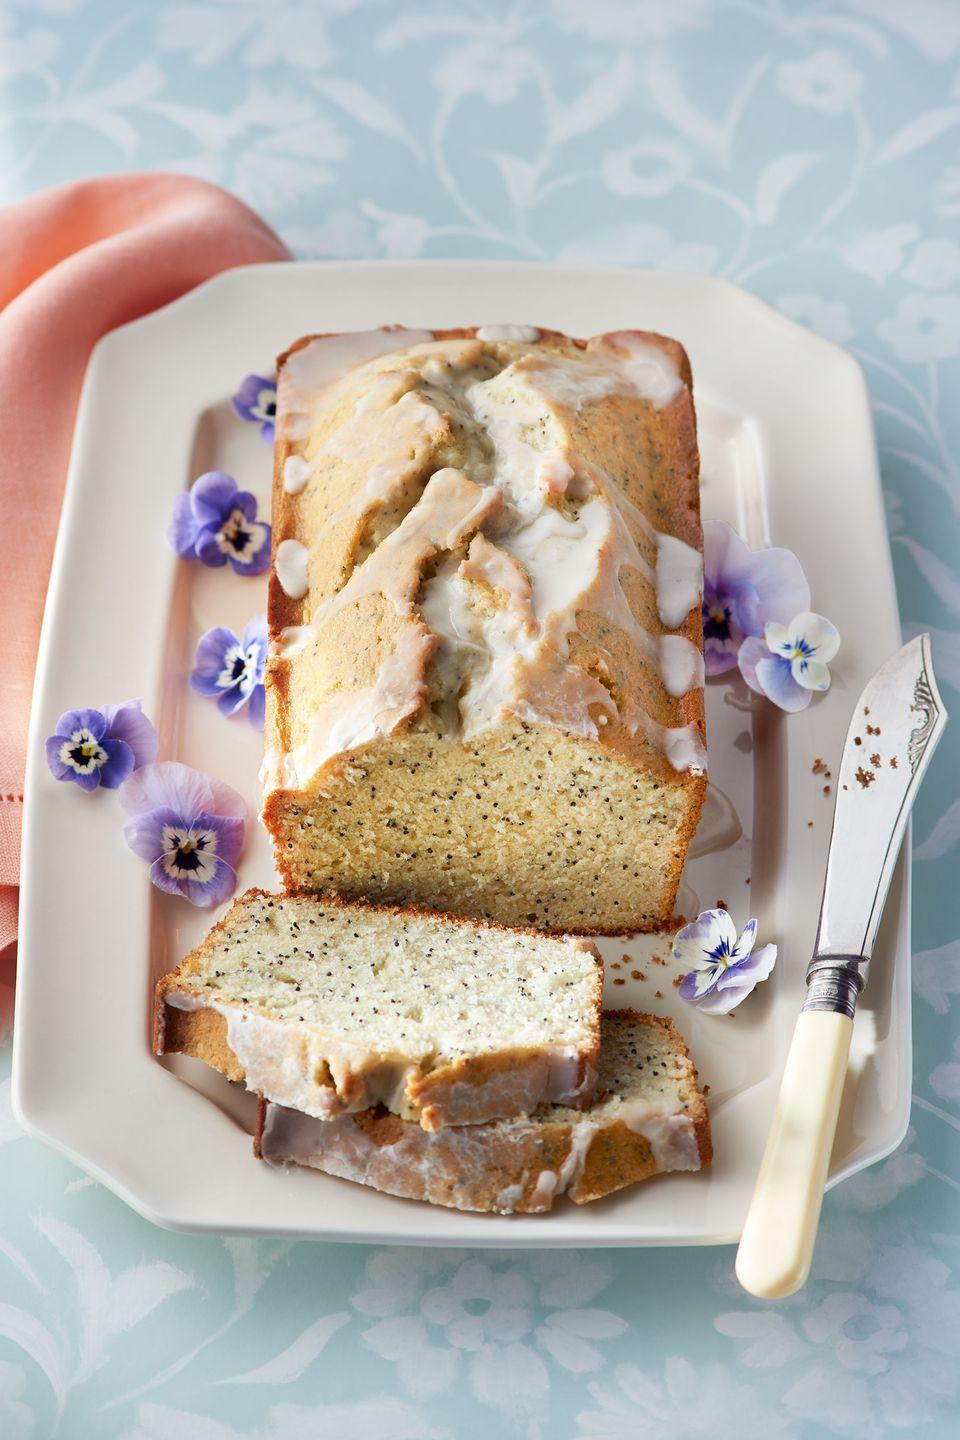 "<p>This moist and fluffy loaf cake is pleasantly sweet. Decorate the platter with small flowers from your garden for a special touch mom will appreciate.</p><p><strong><a href=""https://www.countryliving.com/food-drinks/recipes/a37725/almond-and-poppy-seed-loaf-cake-recipe/"" rel=""nofollow noopener"" target=""_blank"" data-ylk=""slk:Get the recipe"" class=""link rapid-noclick-resp"">Get the recipe</a>.</strong></p><p><a class=""link rapid-noclick-resp"" href=""https://www.lodgecastiron.com/product/seasoned-cast-iron-loaf-pan"" rel=""nofollow noopener"" target=""_blank"" data-ylk=""slk:SHOP BREAD LOAF PANS"">SHOP BREAD LOAF PANS</a></p>"